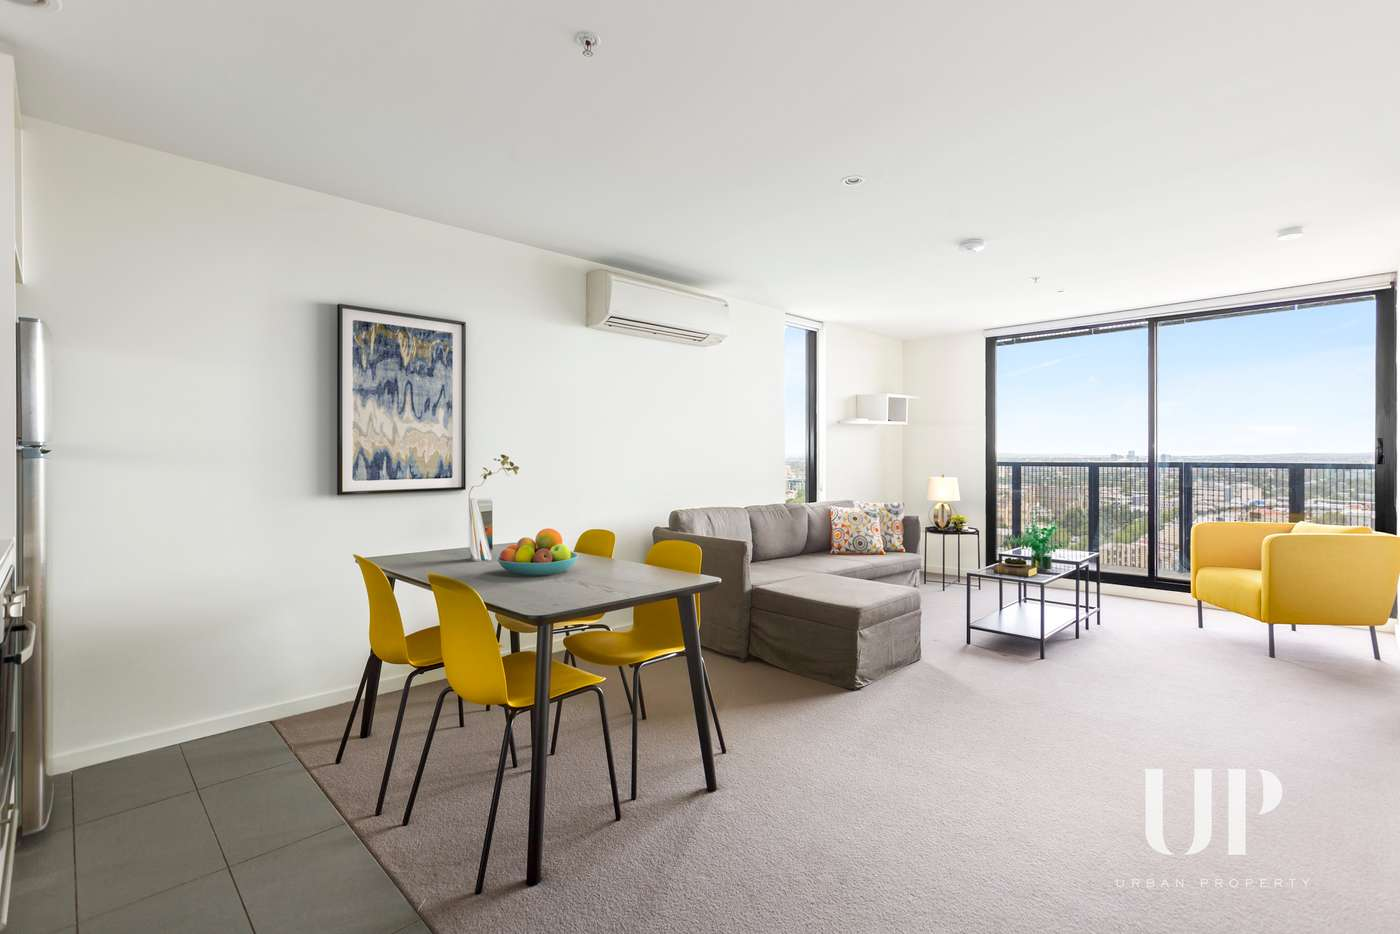 Main view of Homely apartment listing, 1701/243 Franklin Street, Melbourne VIC 3000